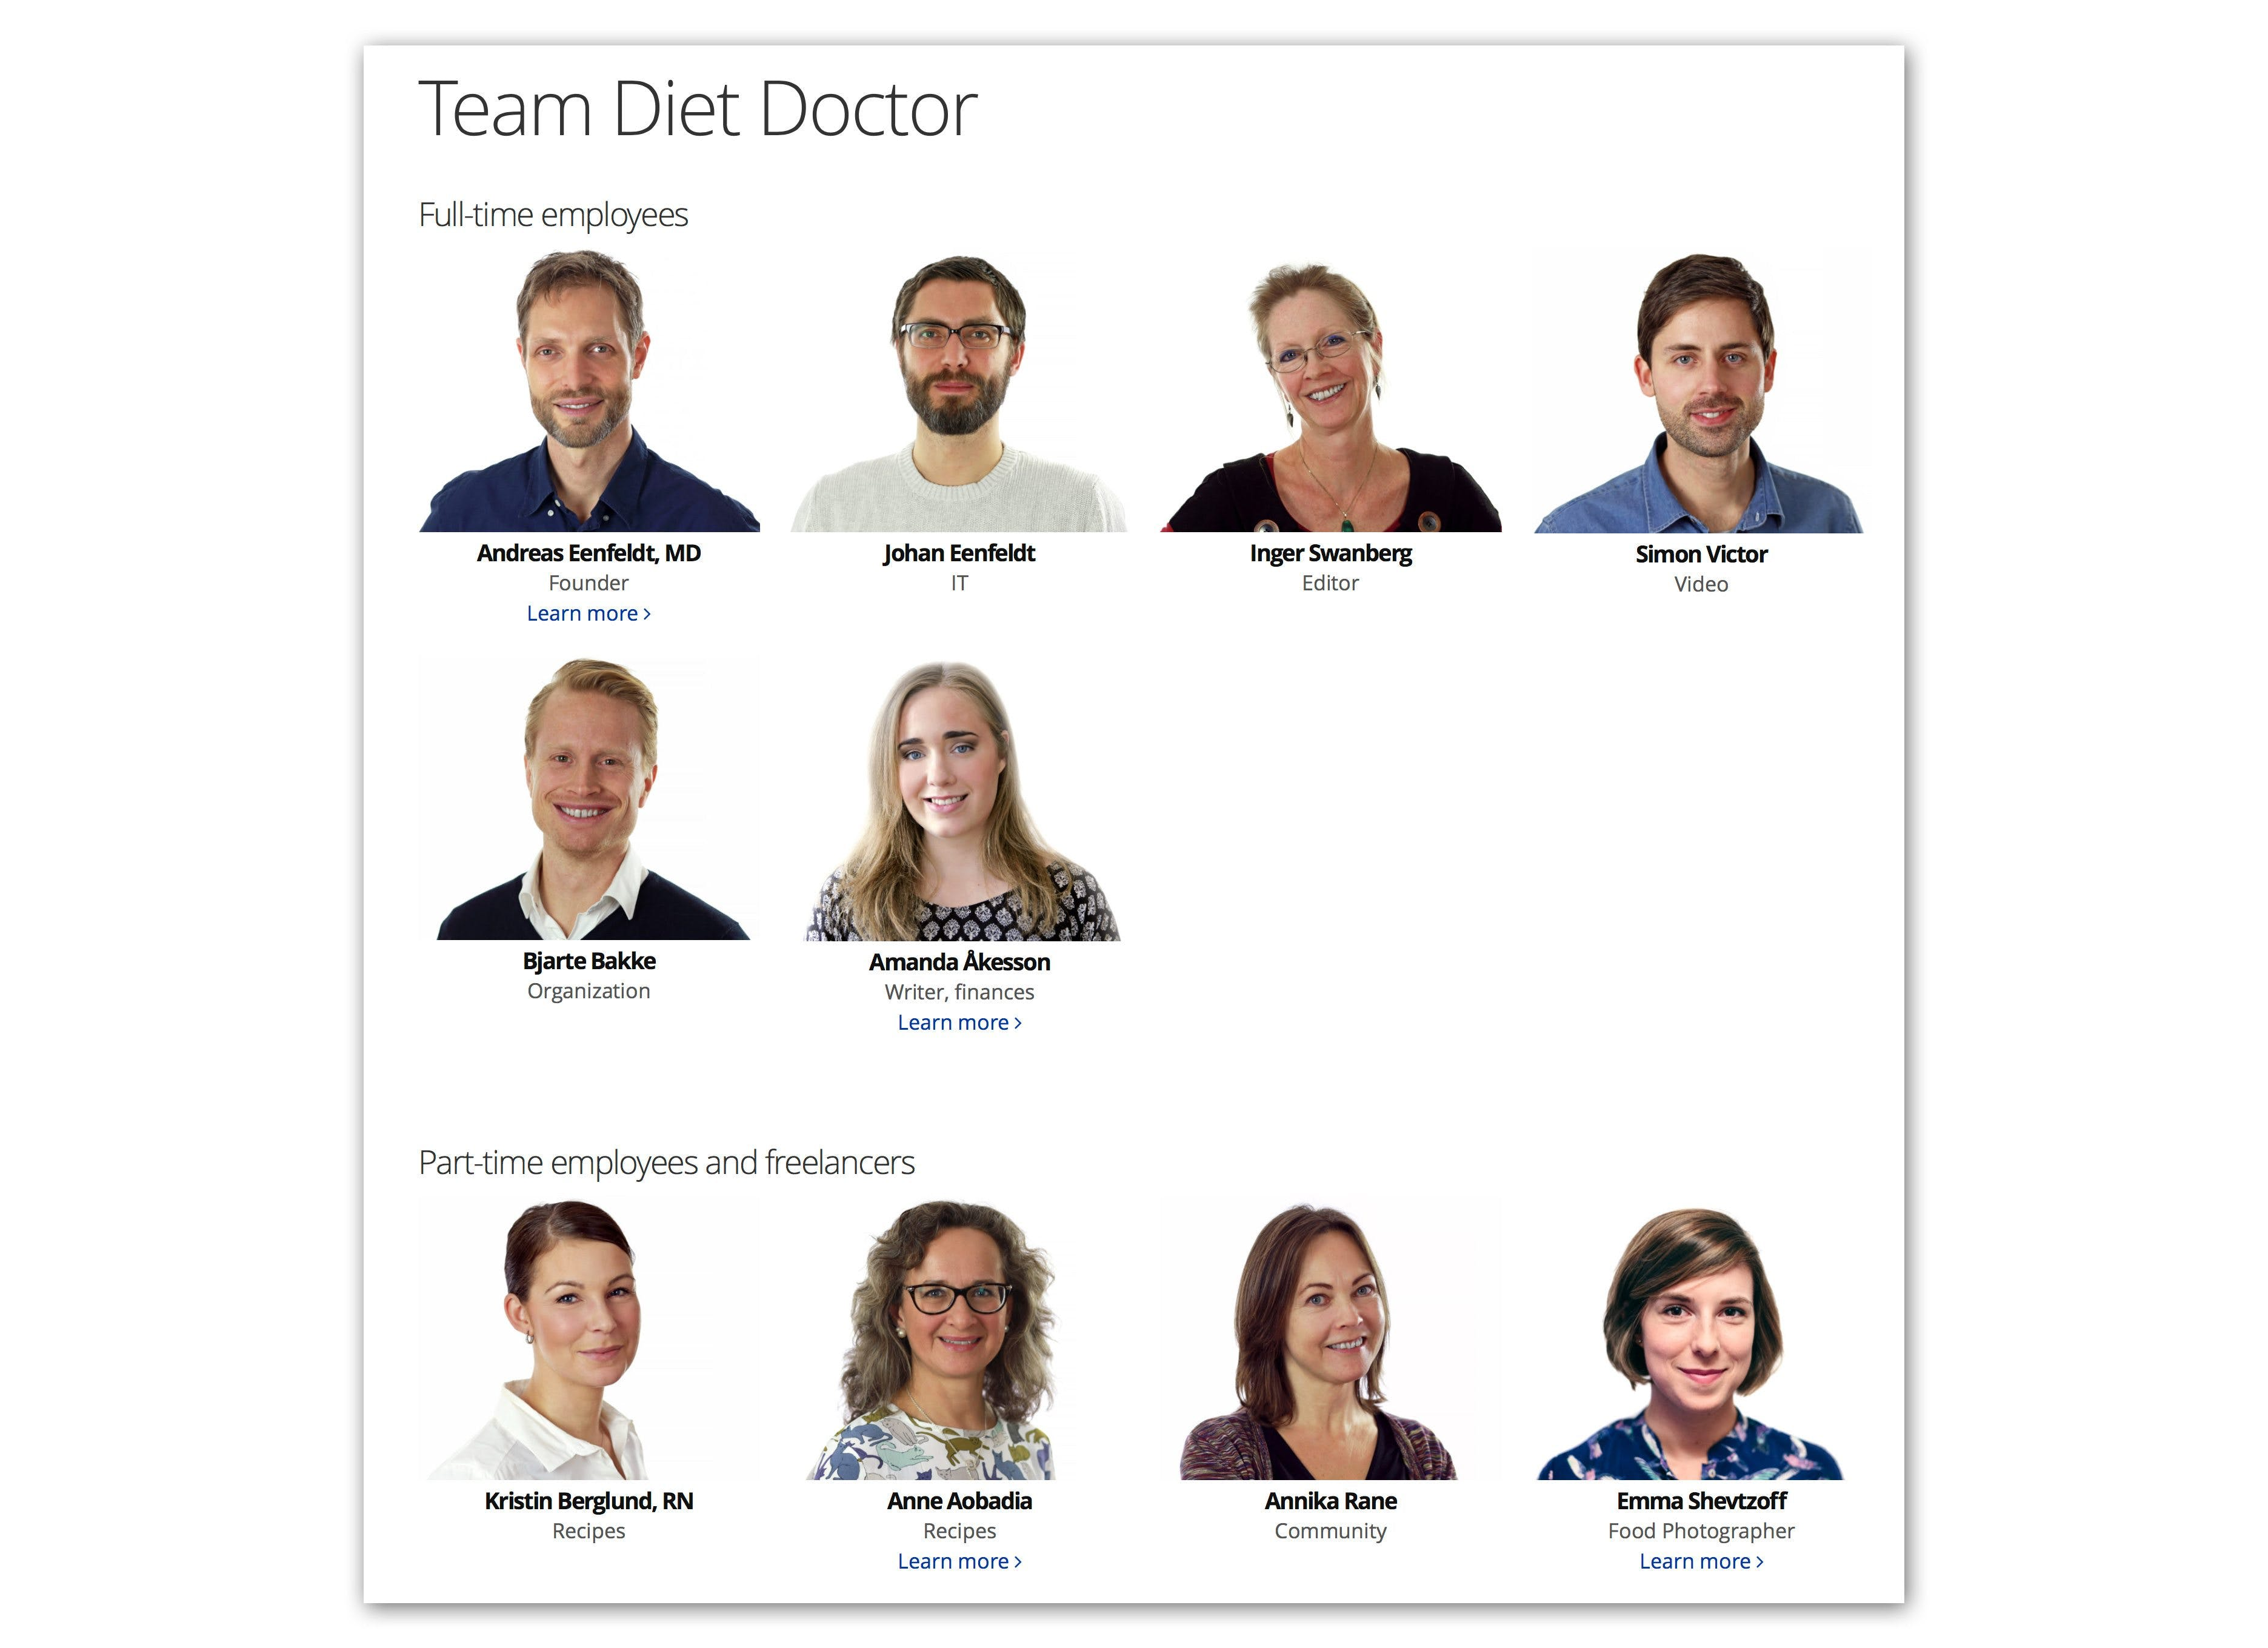 Team Diet Doctor